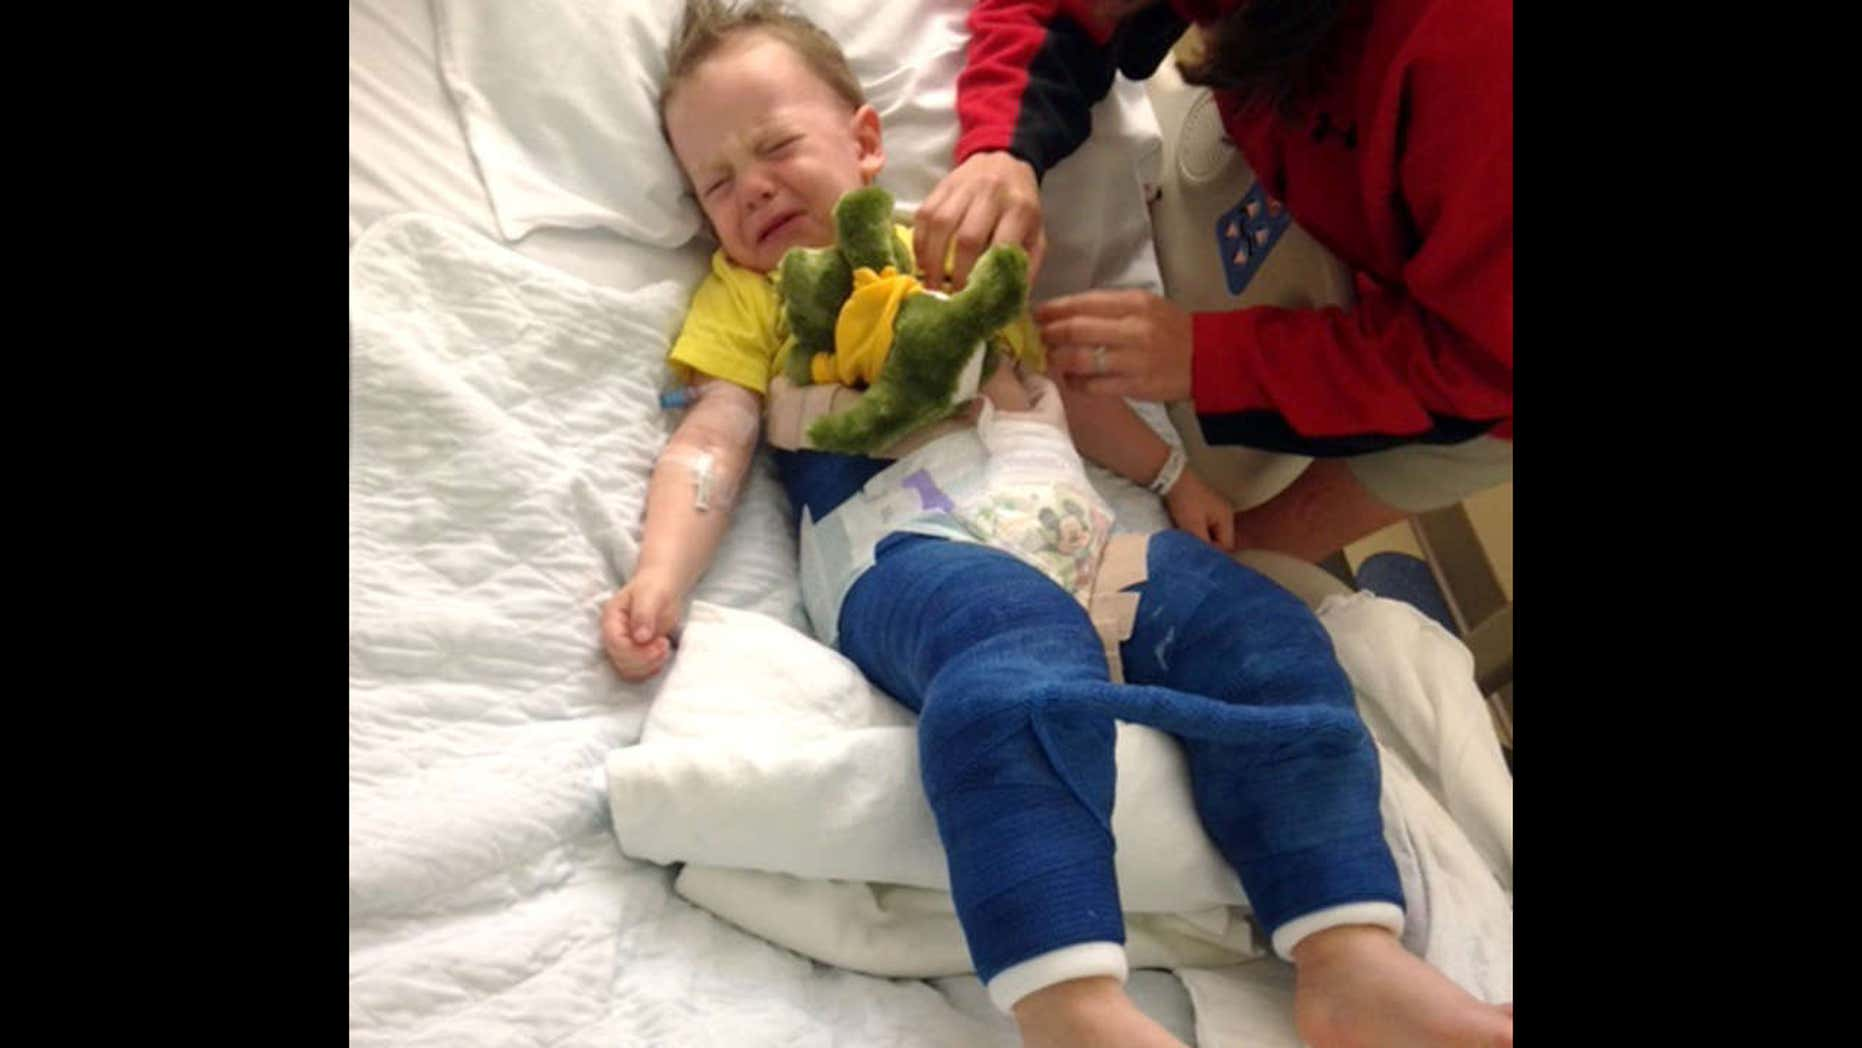 In this June 26, 2017 photo provided by Eddie Hill, Hill's son Colton is comforted while lying in a hospital bed at Johns Hopkins All Children's Hospital in St. Petersburg, Fla.